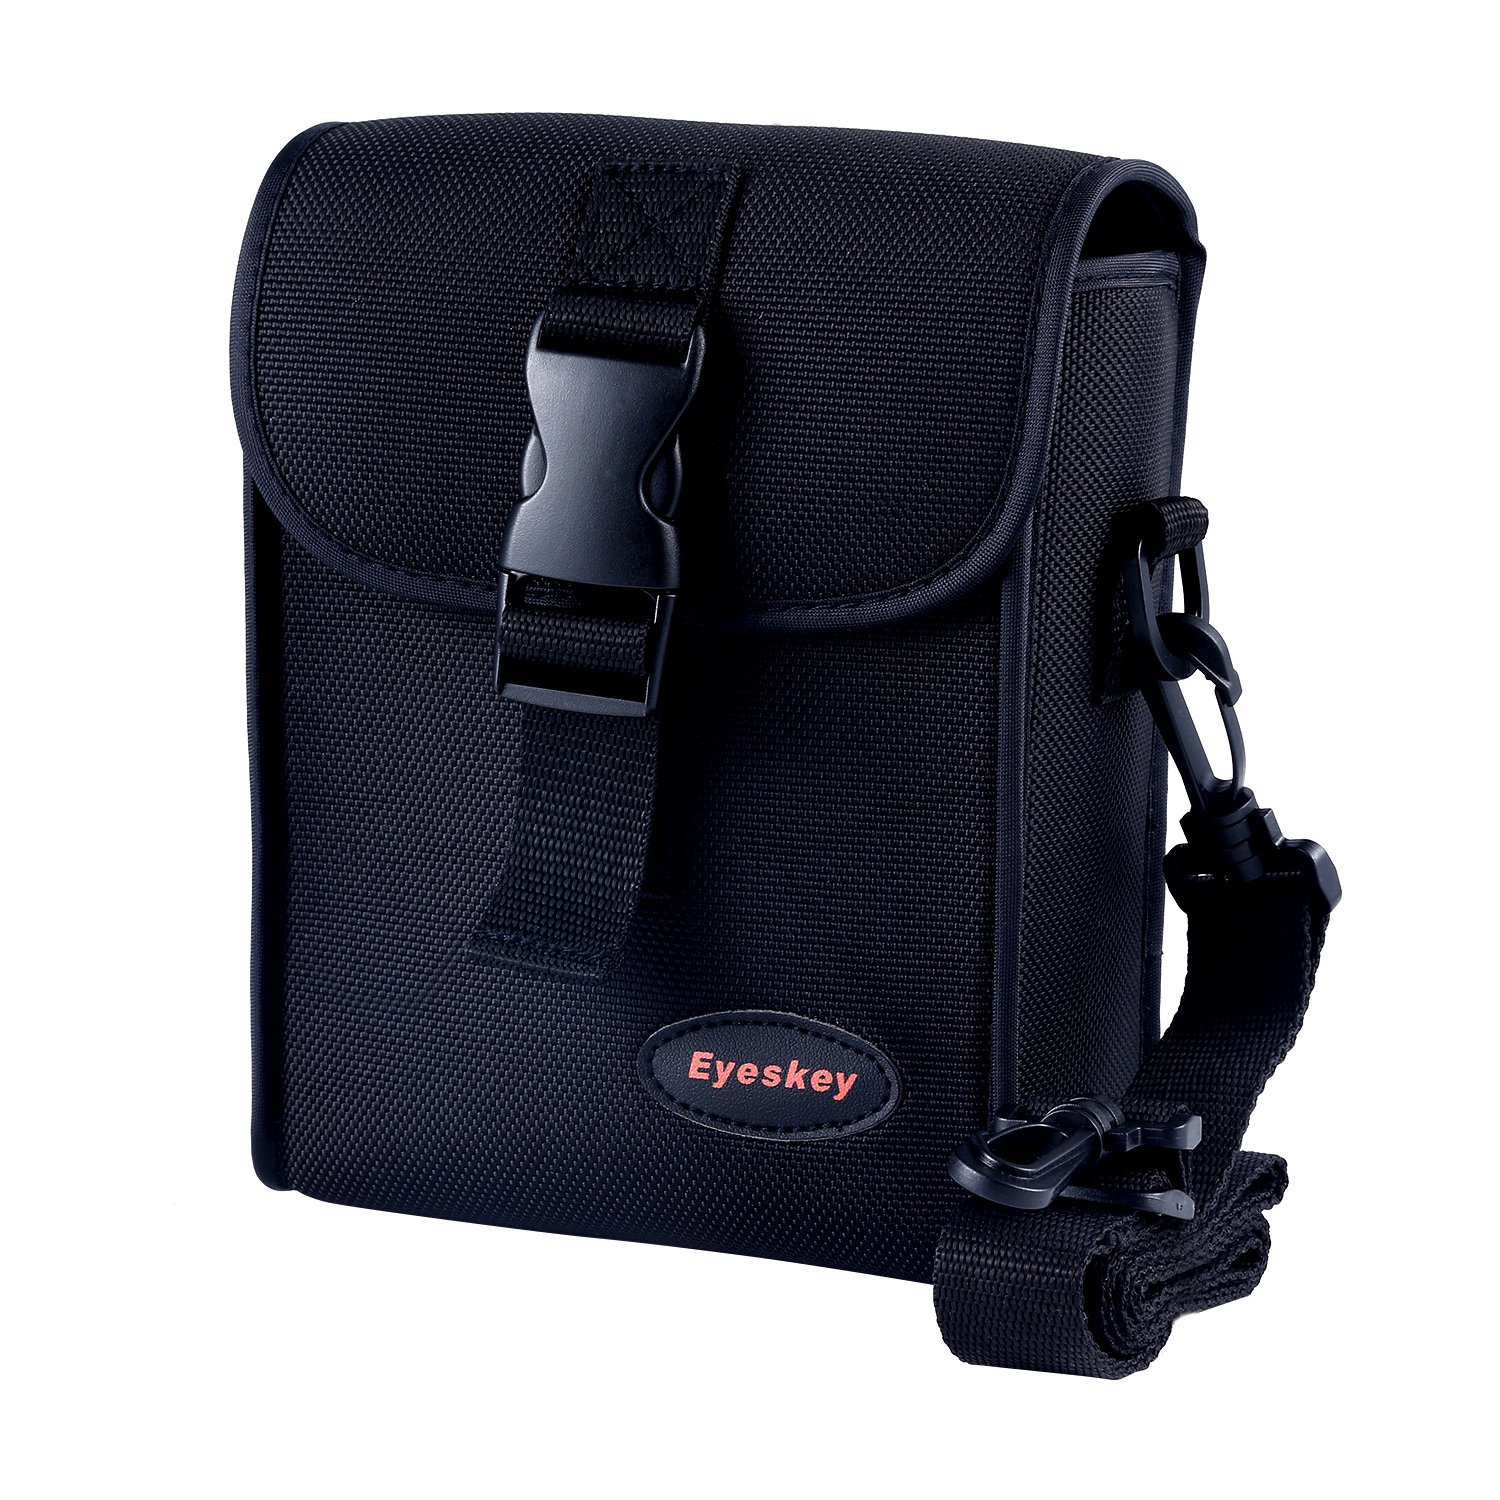 Eyeskey Universal 50mm Roof Prism Binoculars Case, Best Choice for Your Valuable Binoculars, Convenient and Stylish 4332028606